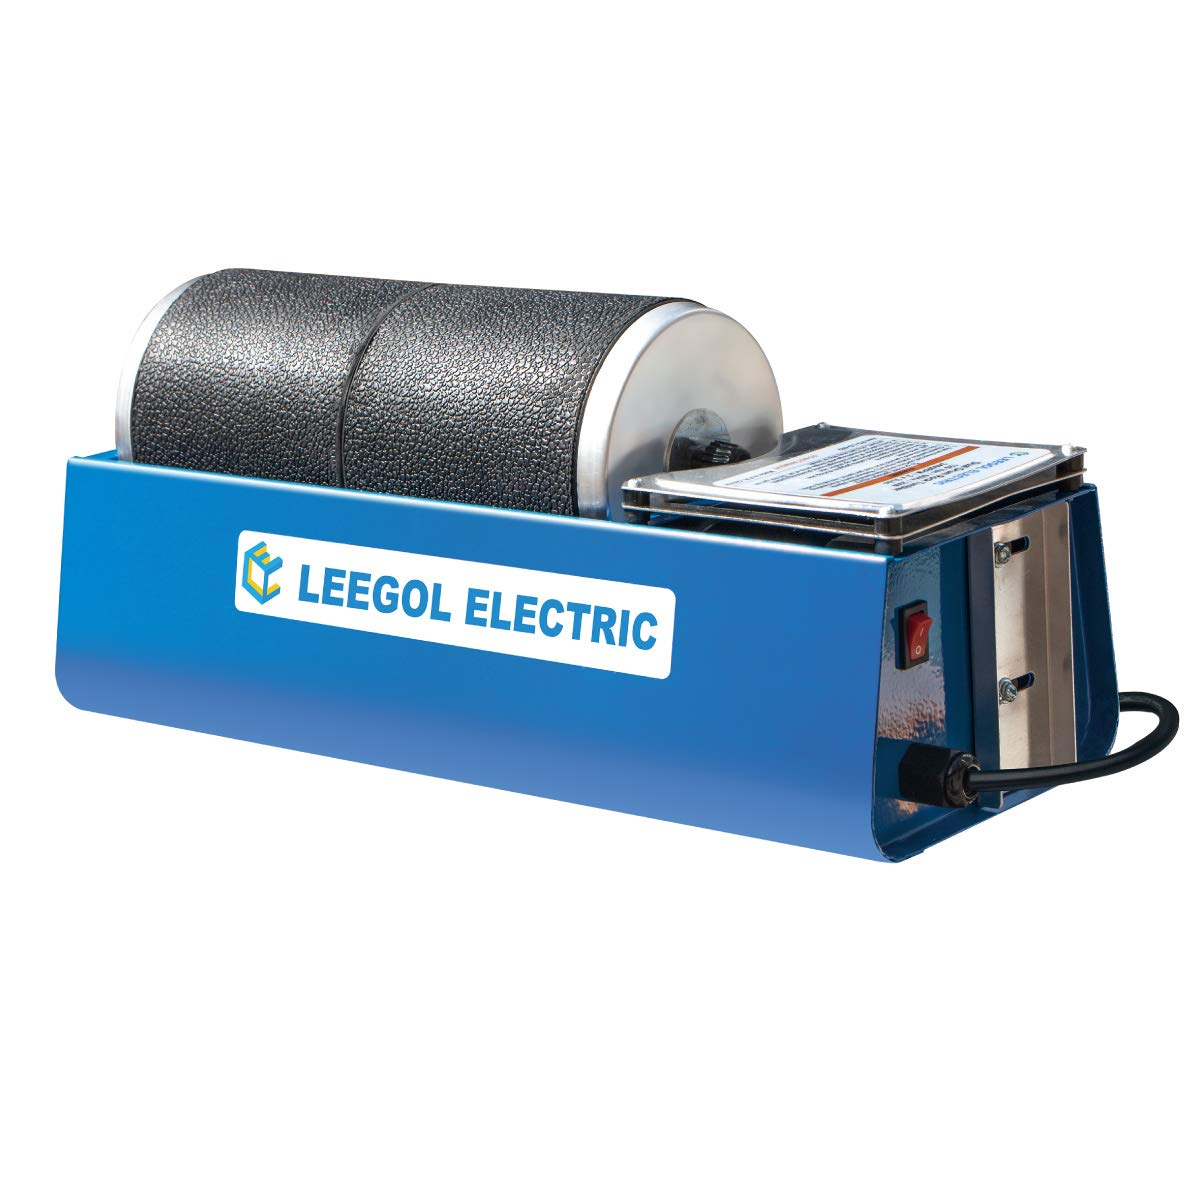 Leegol Electric Rotary Rock Tumbler Double Drum 6LB Lapidary Polisher (Double Barrel) by Leegol Electric